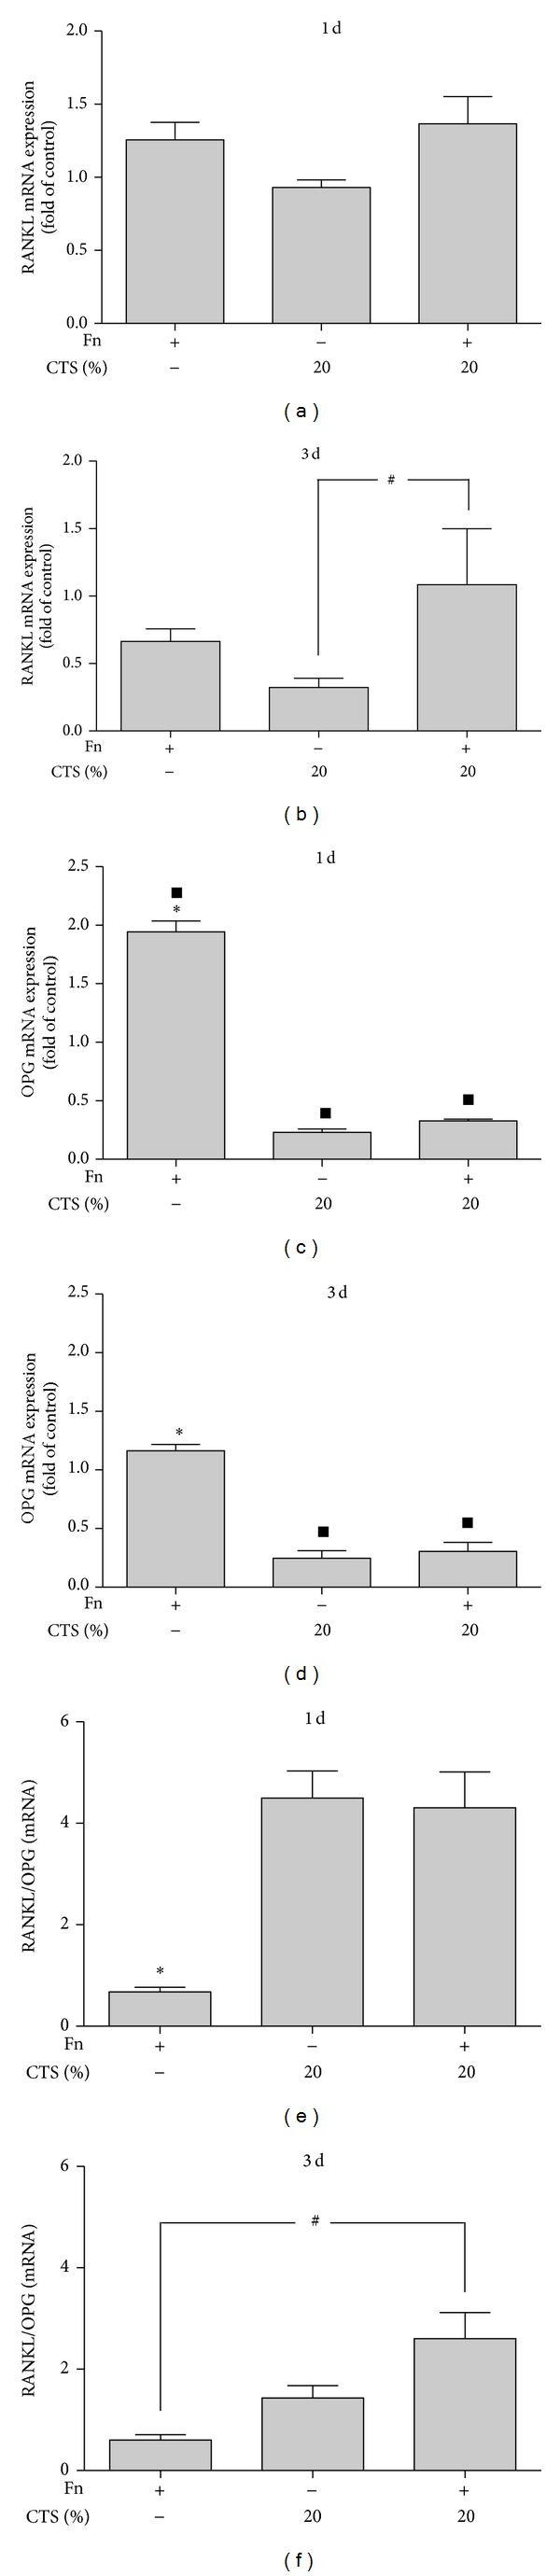 (a and b) RANKL expression in PDL cells stimulated by F. <t>nucleatum</t> <t>ATCC</t> 25586 and/or CTSH at 1 day (a) and 3 days (b). (c and d) OPG expression in PDL cells stimulated by F. nucleatum ATCC 25586 and/or CTSH at 1 day (c) and 3 days (d). (e and f) RANKL/OPG mRNA ratio in PDL cells stimulated by F. nucleatum ATCC 25586 and/or CTSH at 1 day (e) and 3 days (f). *Significant difference compared to other groups ( P